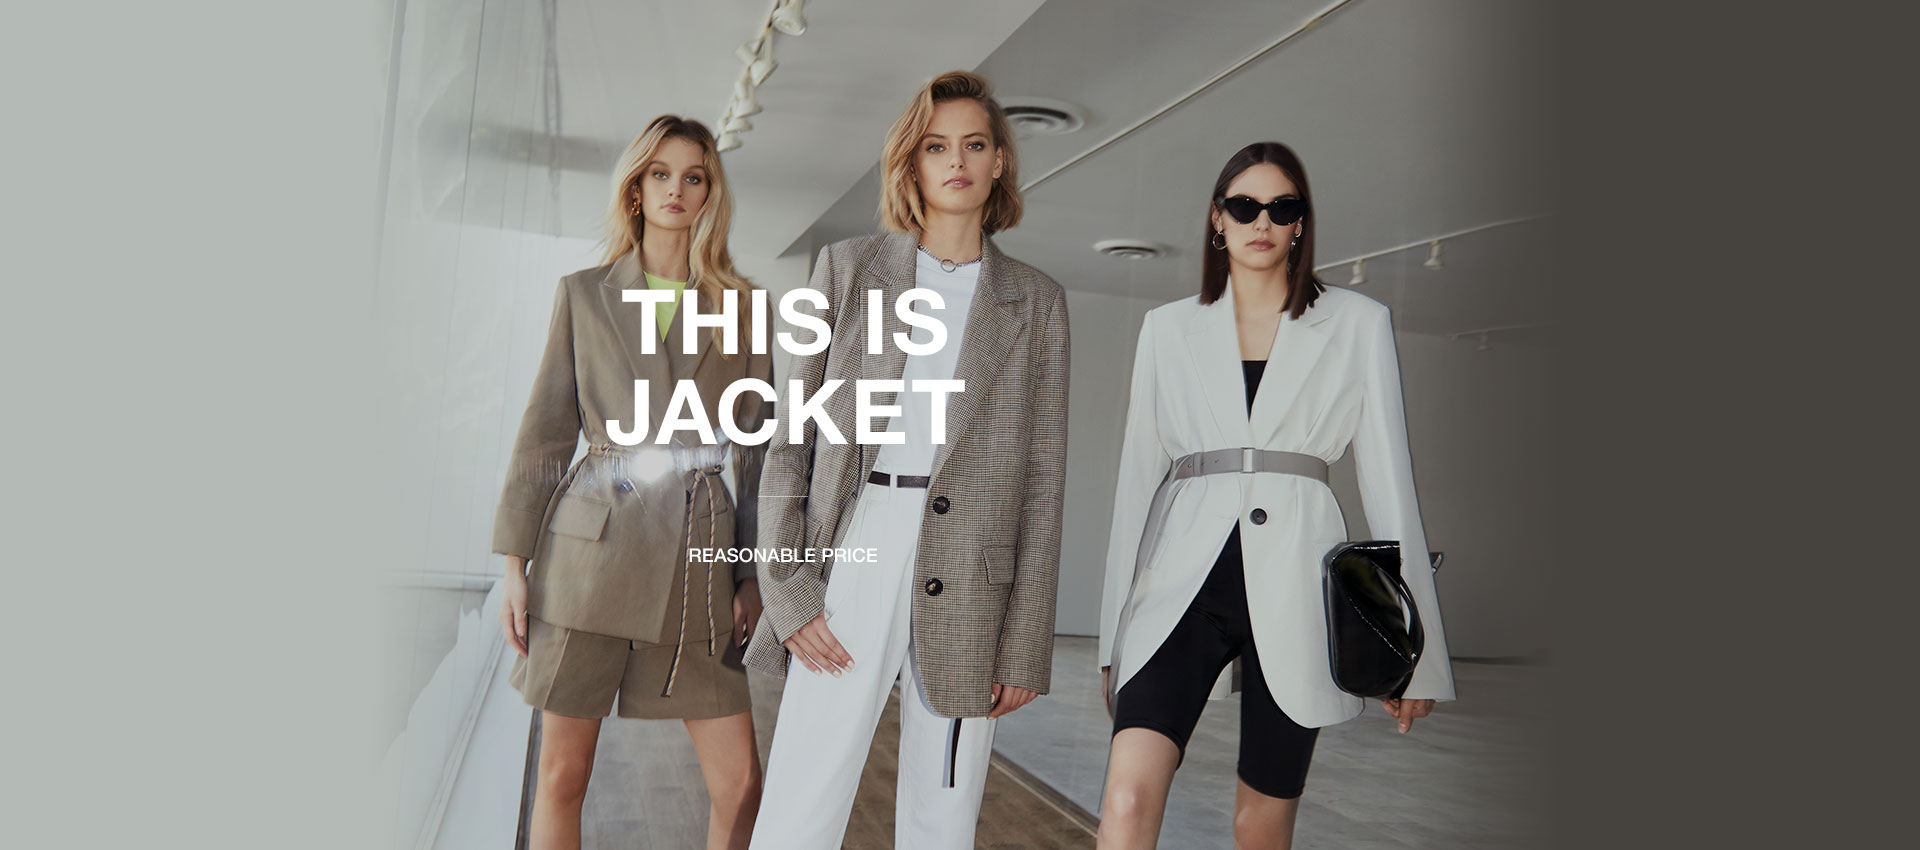 THIS IS JACKET